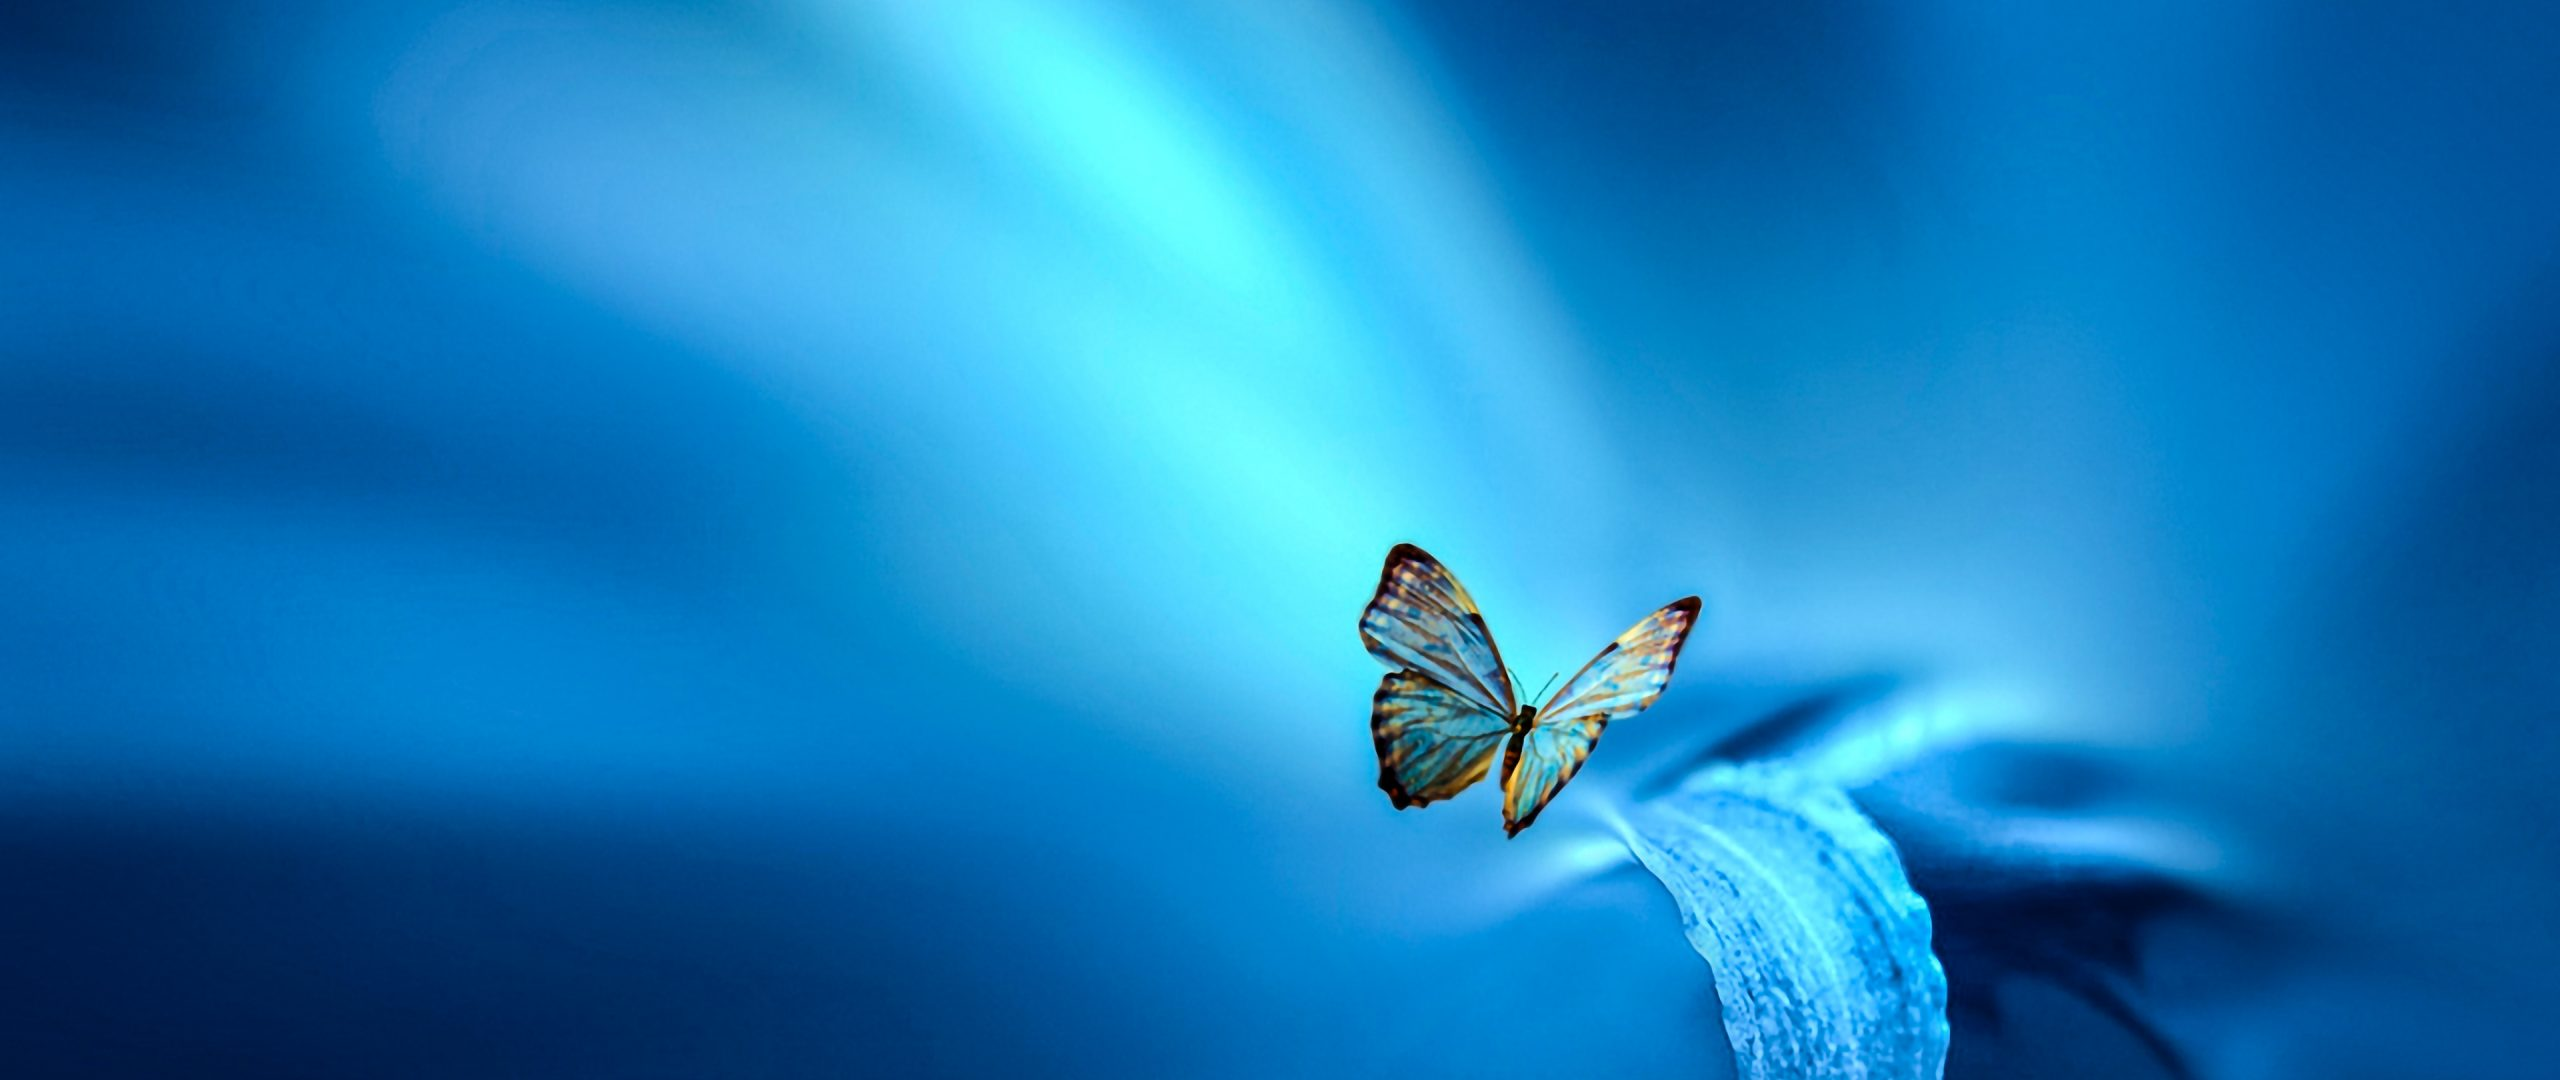 Butterfly Blue Leaf Insect 4K Wallpaper - Best Wallpapers